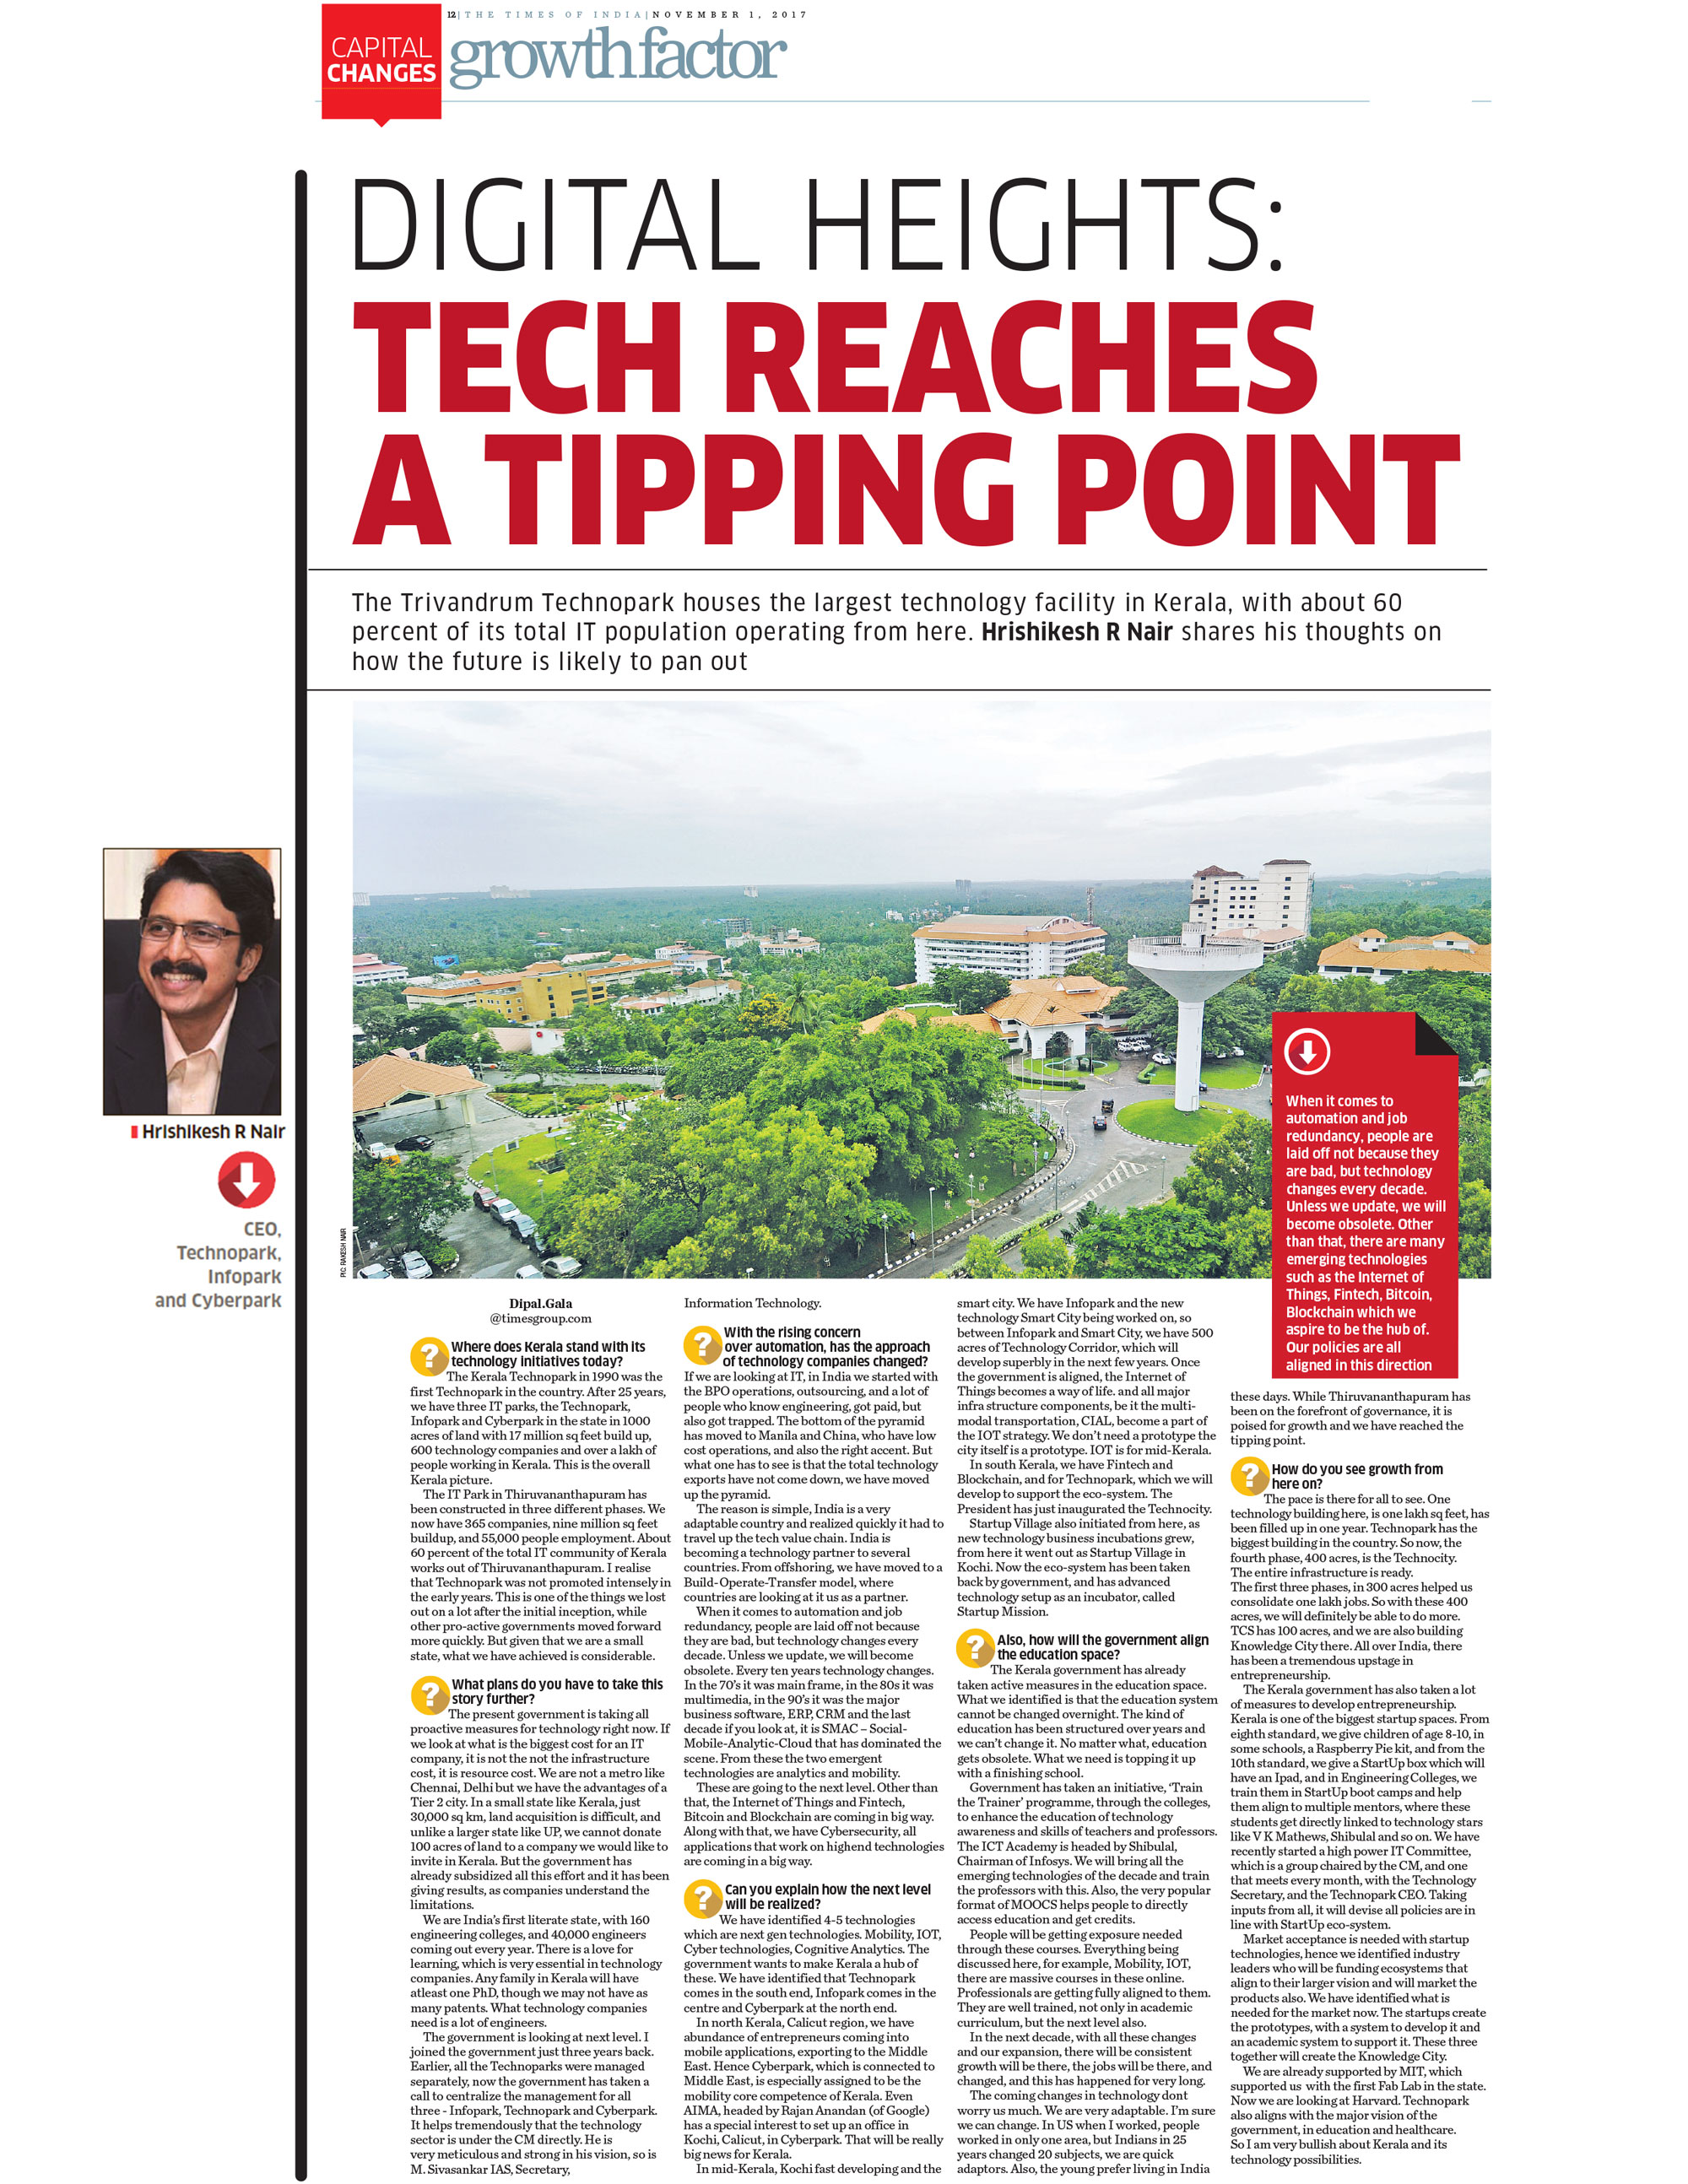 DIGITAL HEIGHTS : TECH REACHES A TIPPING POINT